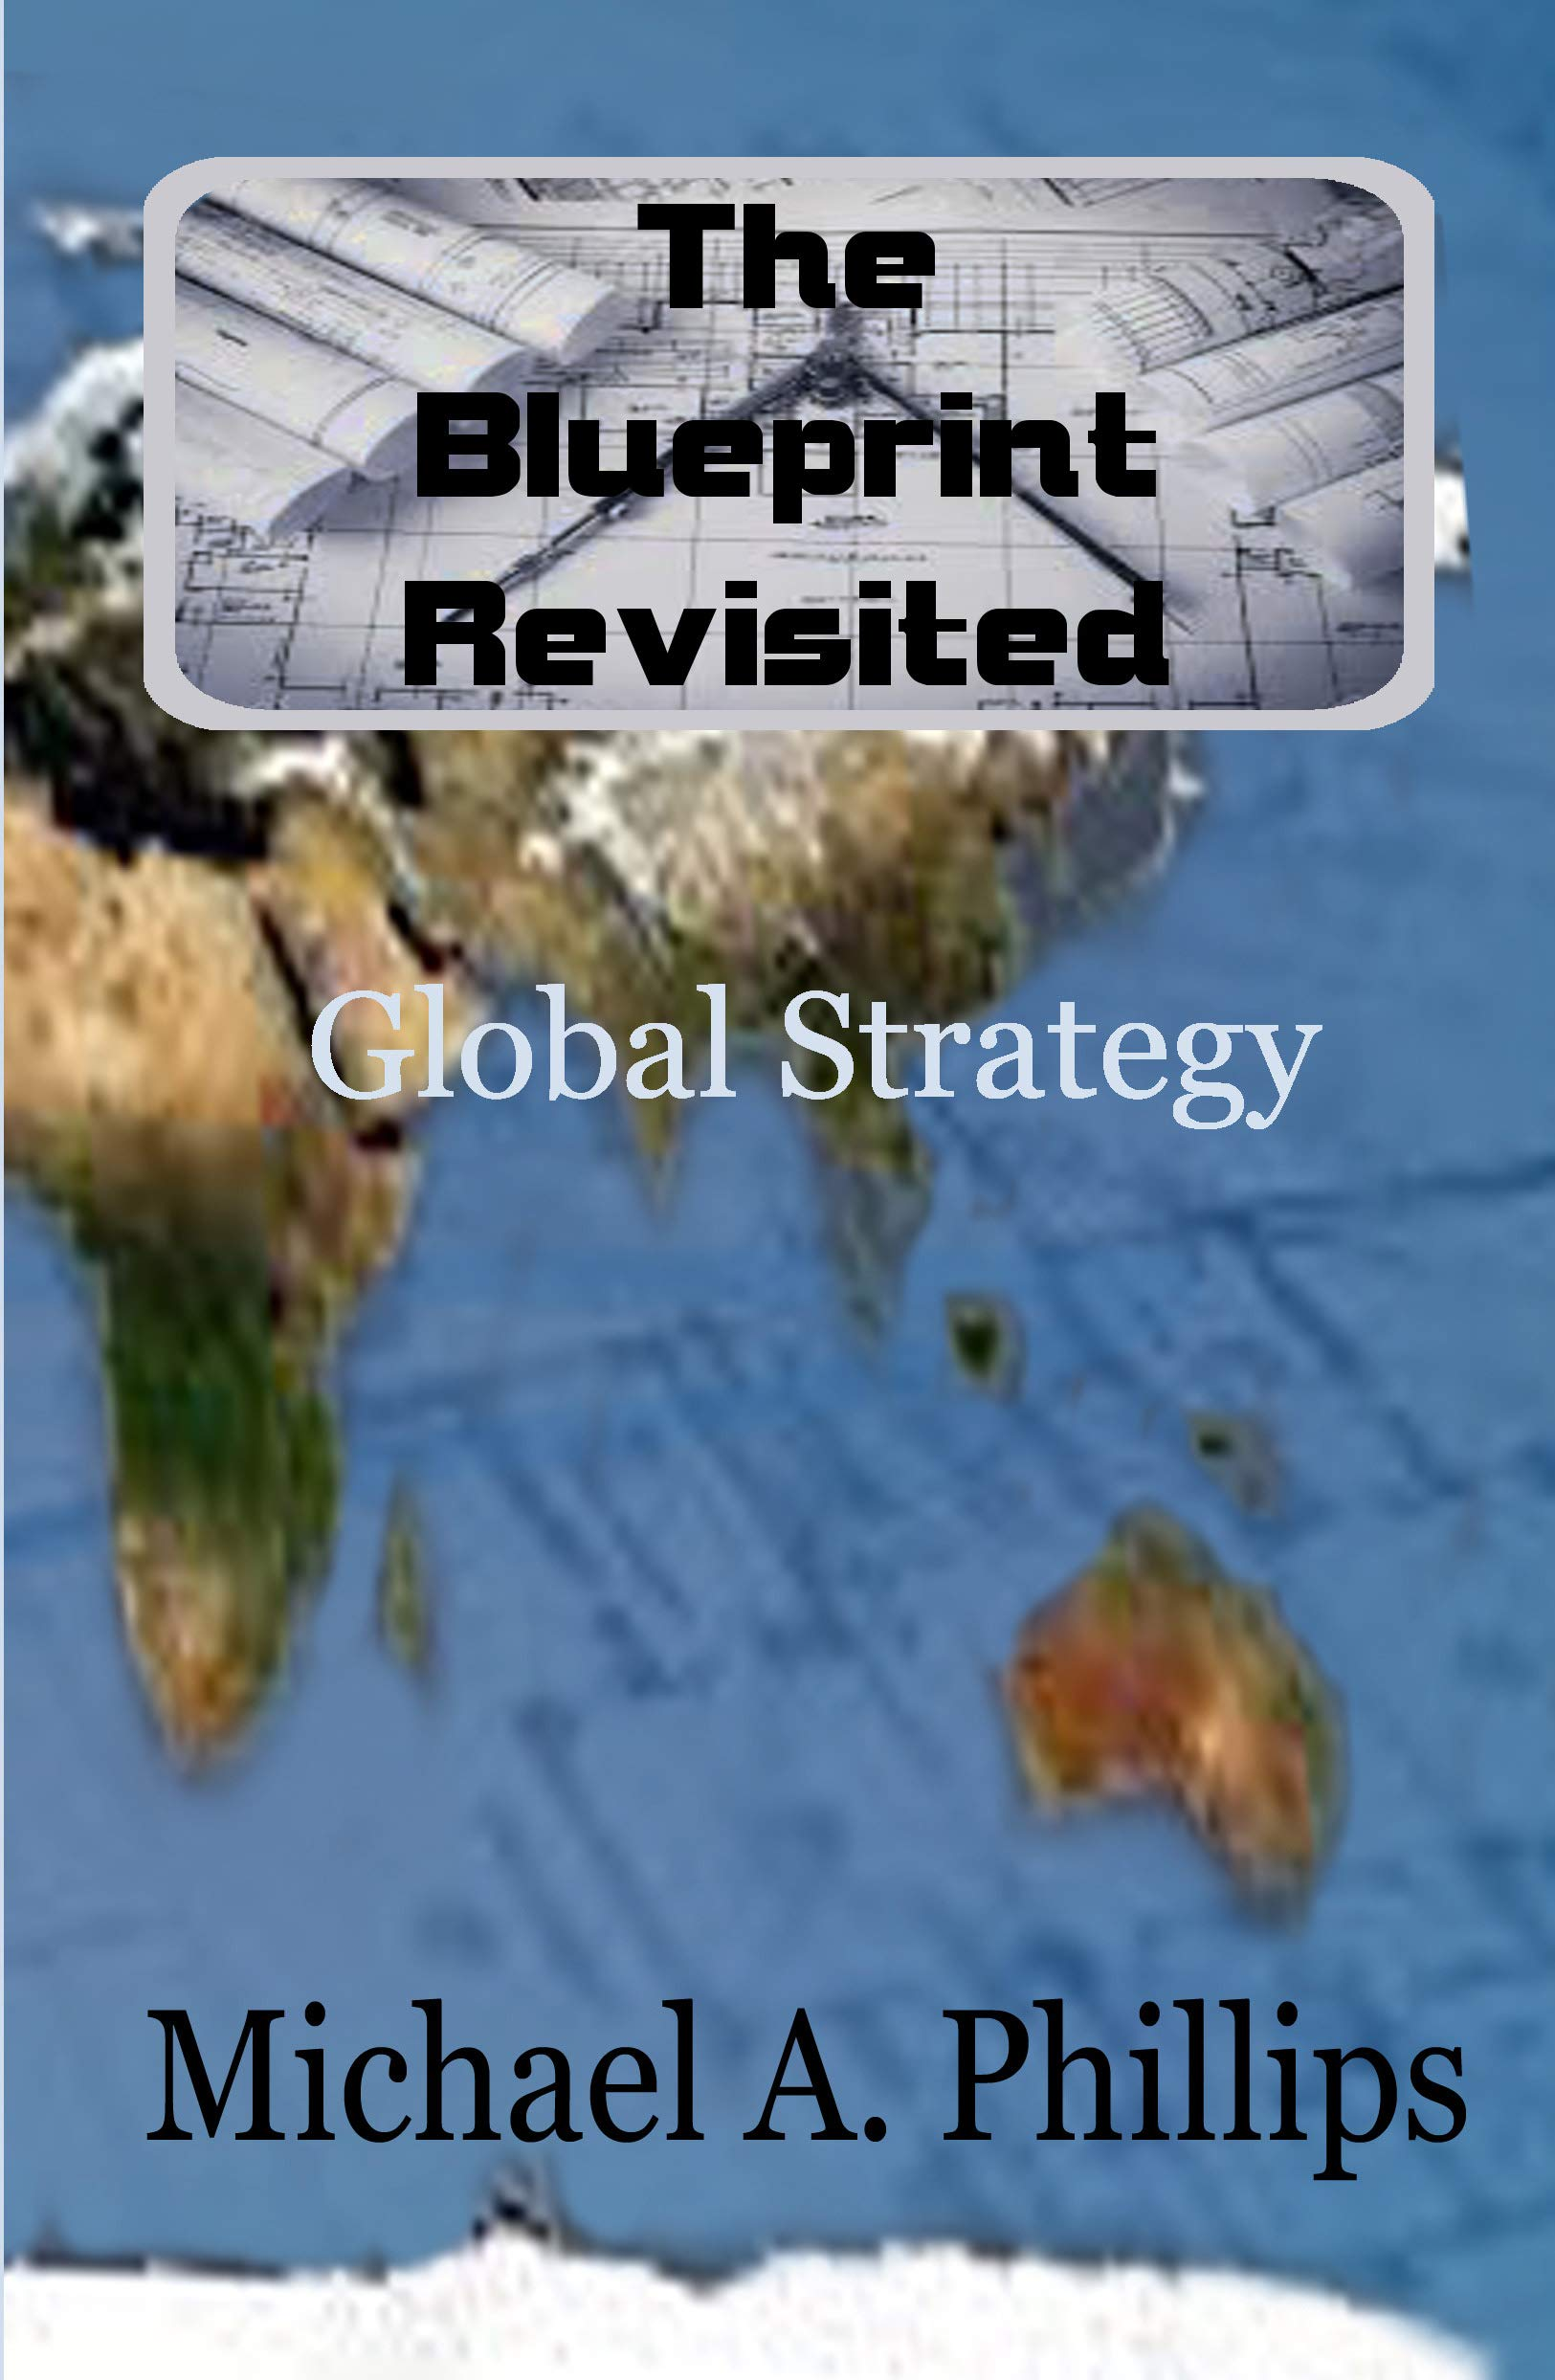 The Blueprint Revisited: Global Strategy